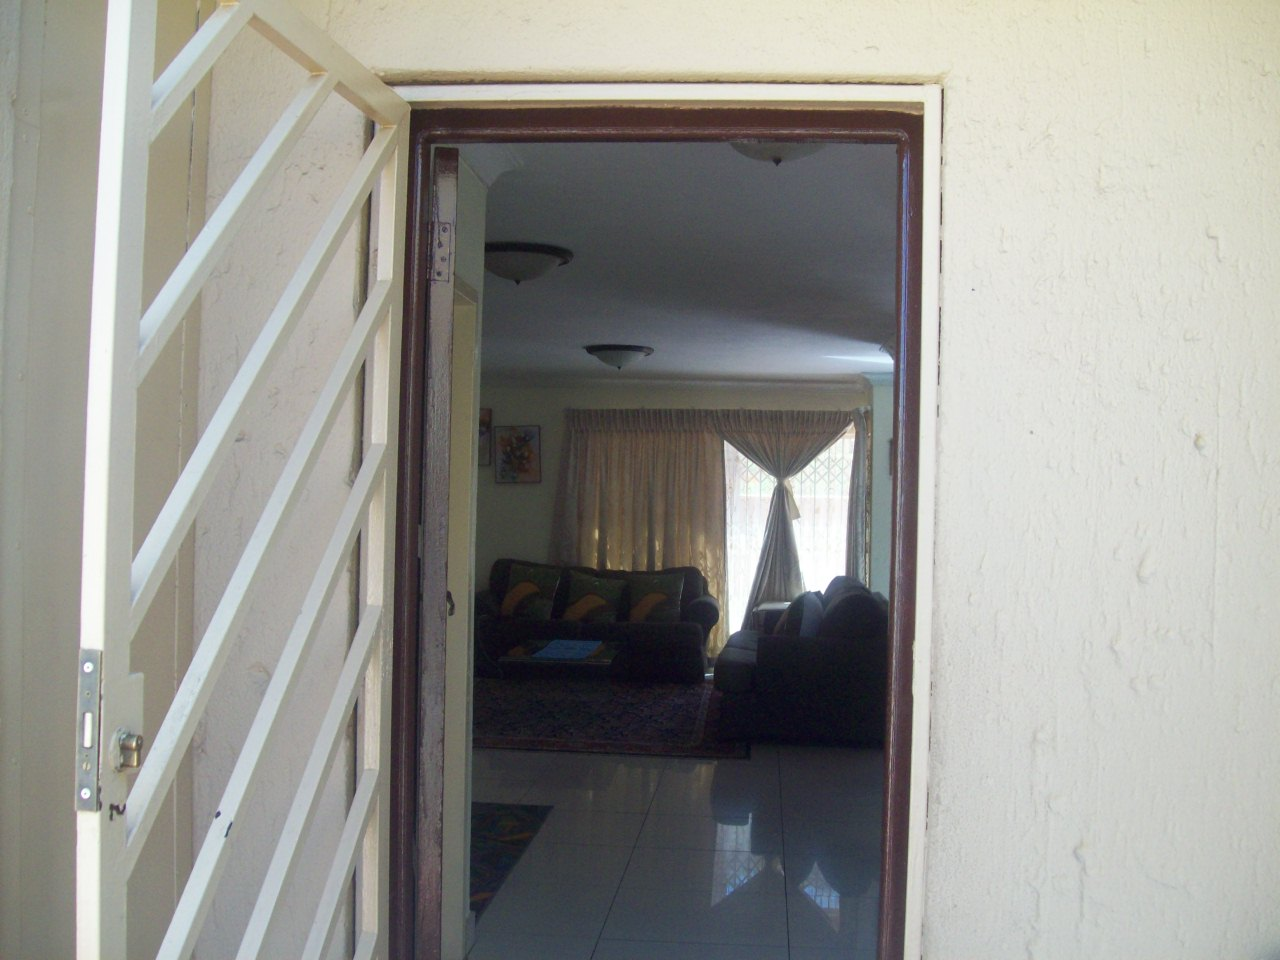 3 Bedroom Townhouse for sale in Bassonia ENT0071278 : photo#16